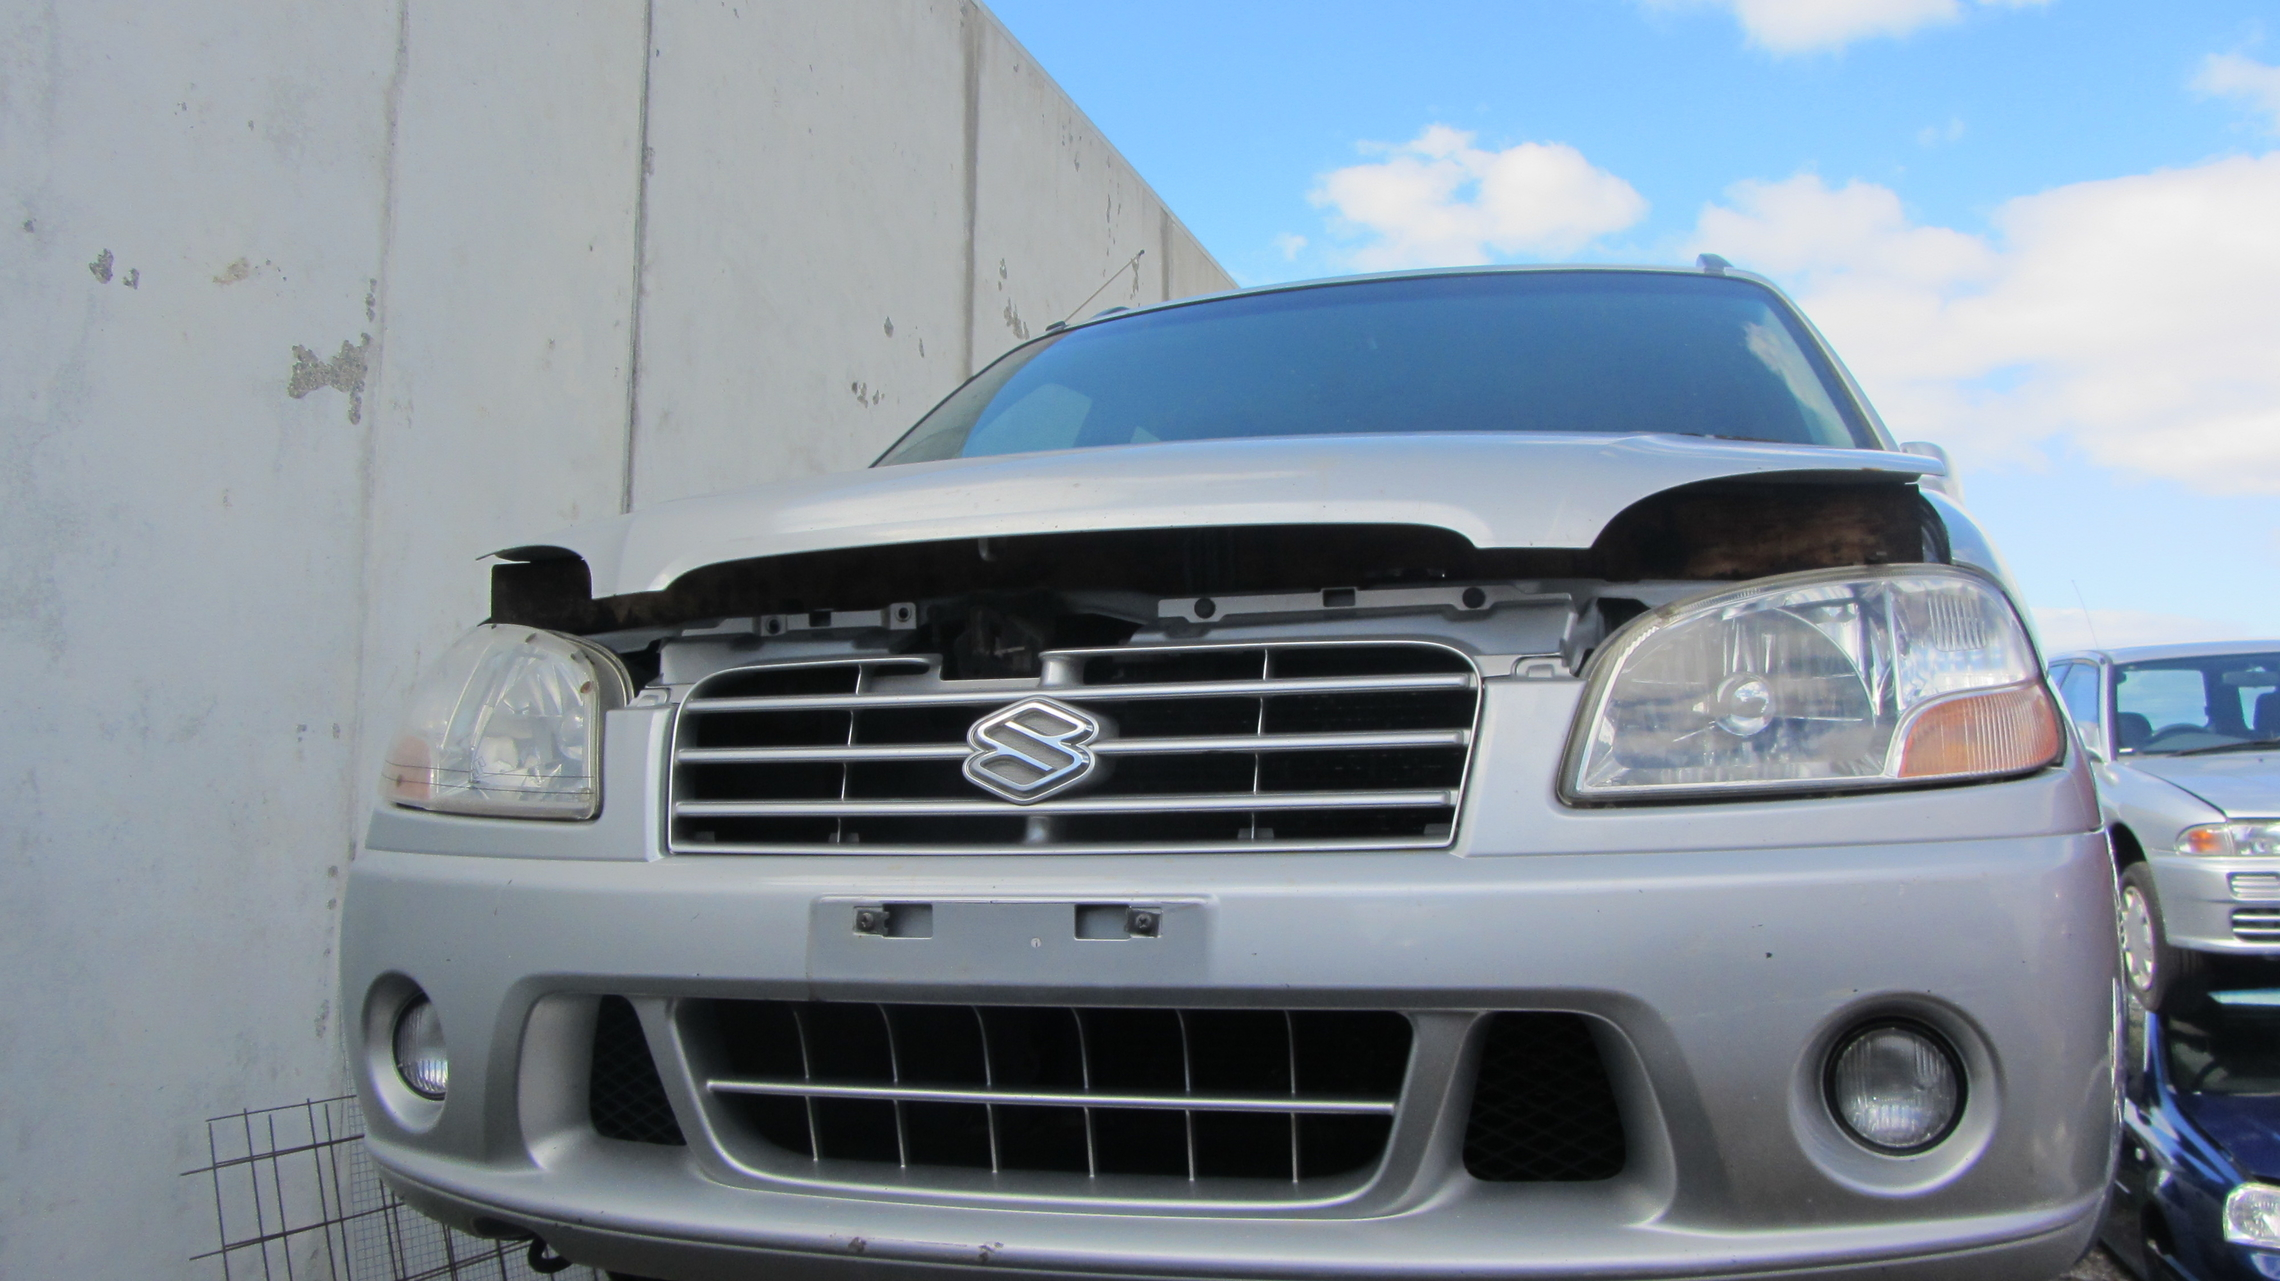 Car Removal, cash for cars, car removal services, cash for cars perth, cash for junk cars